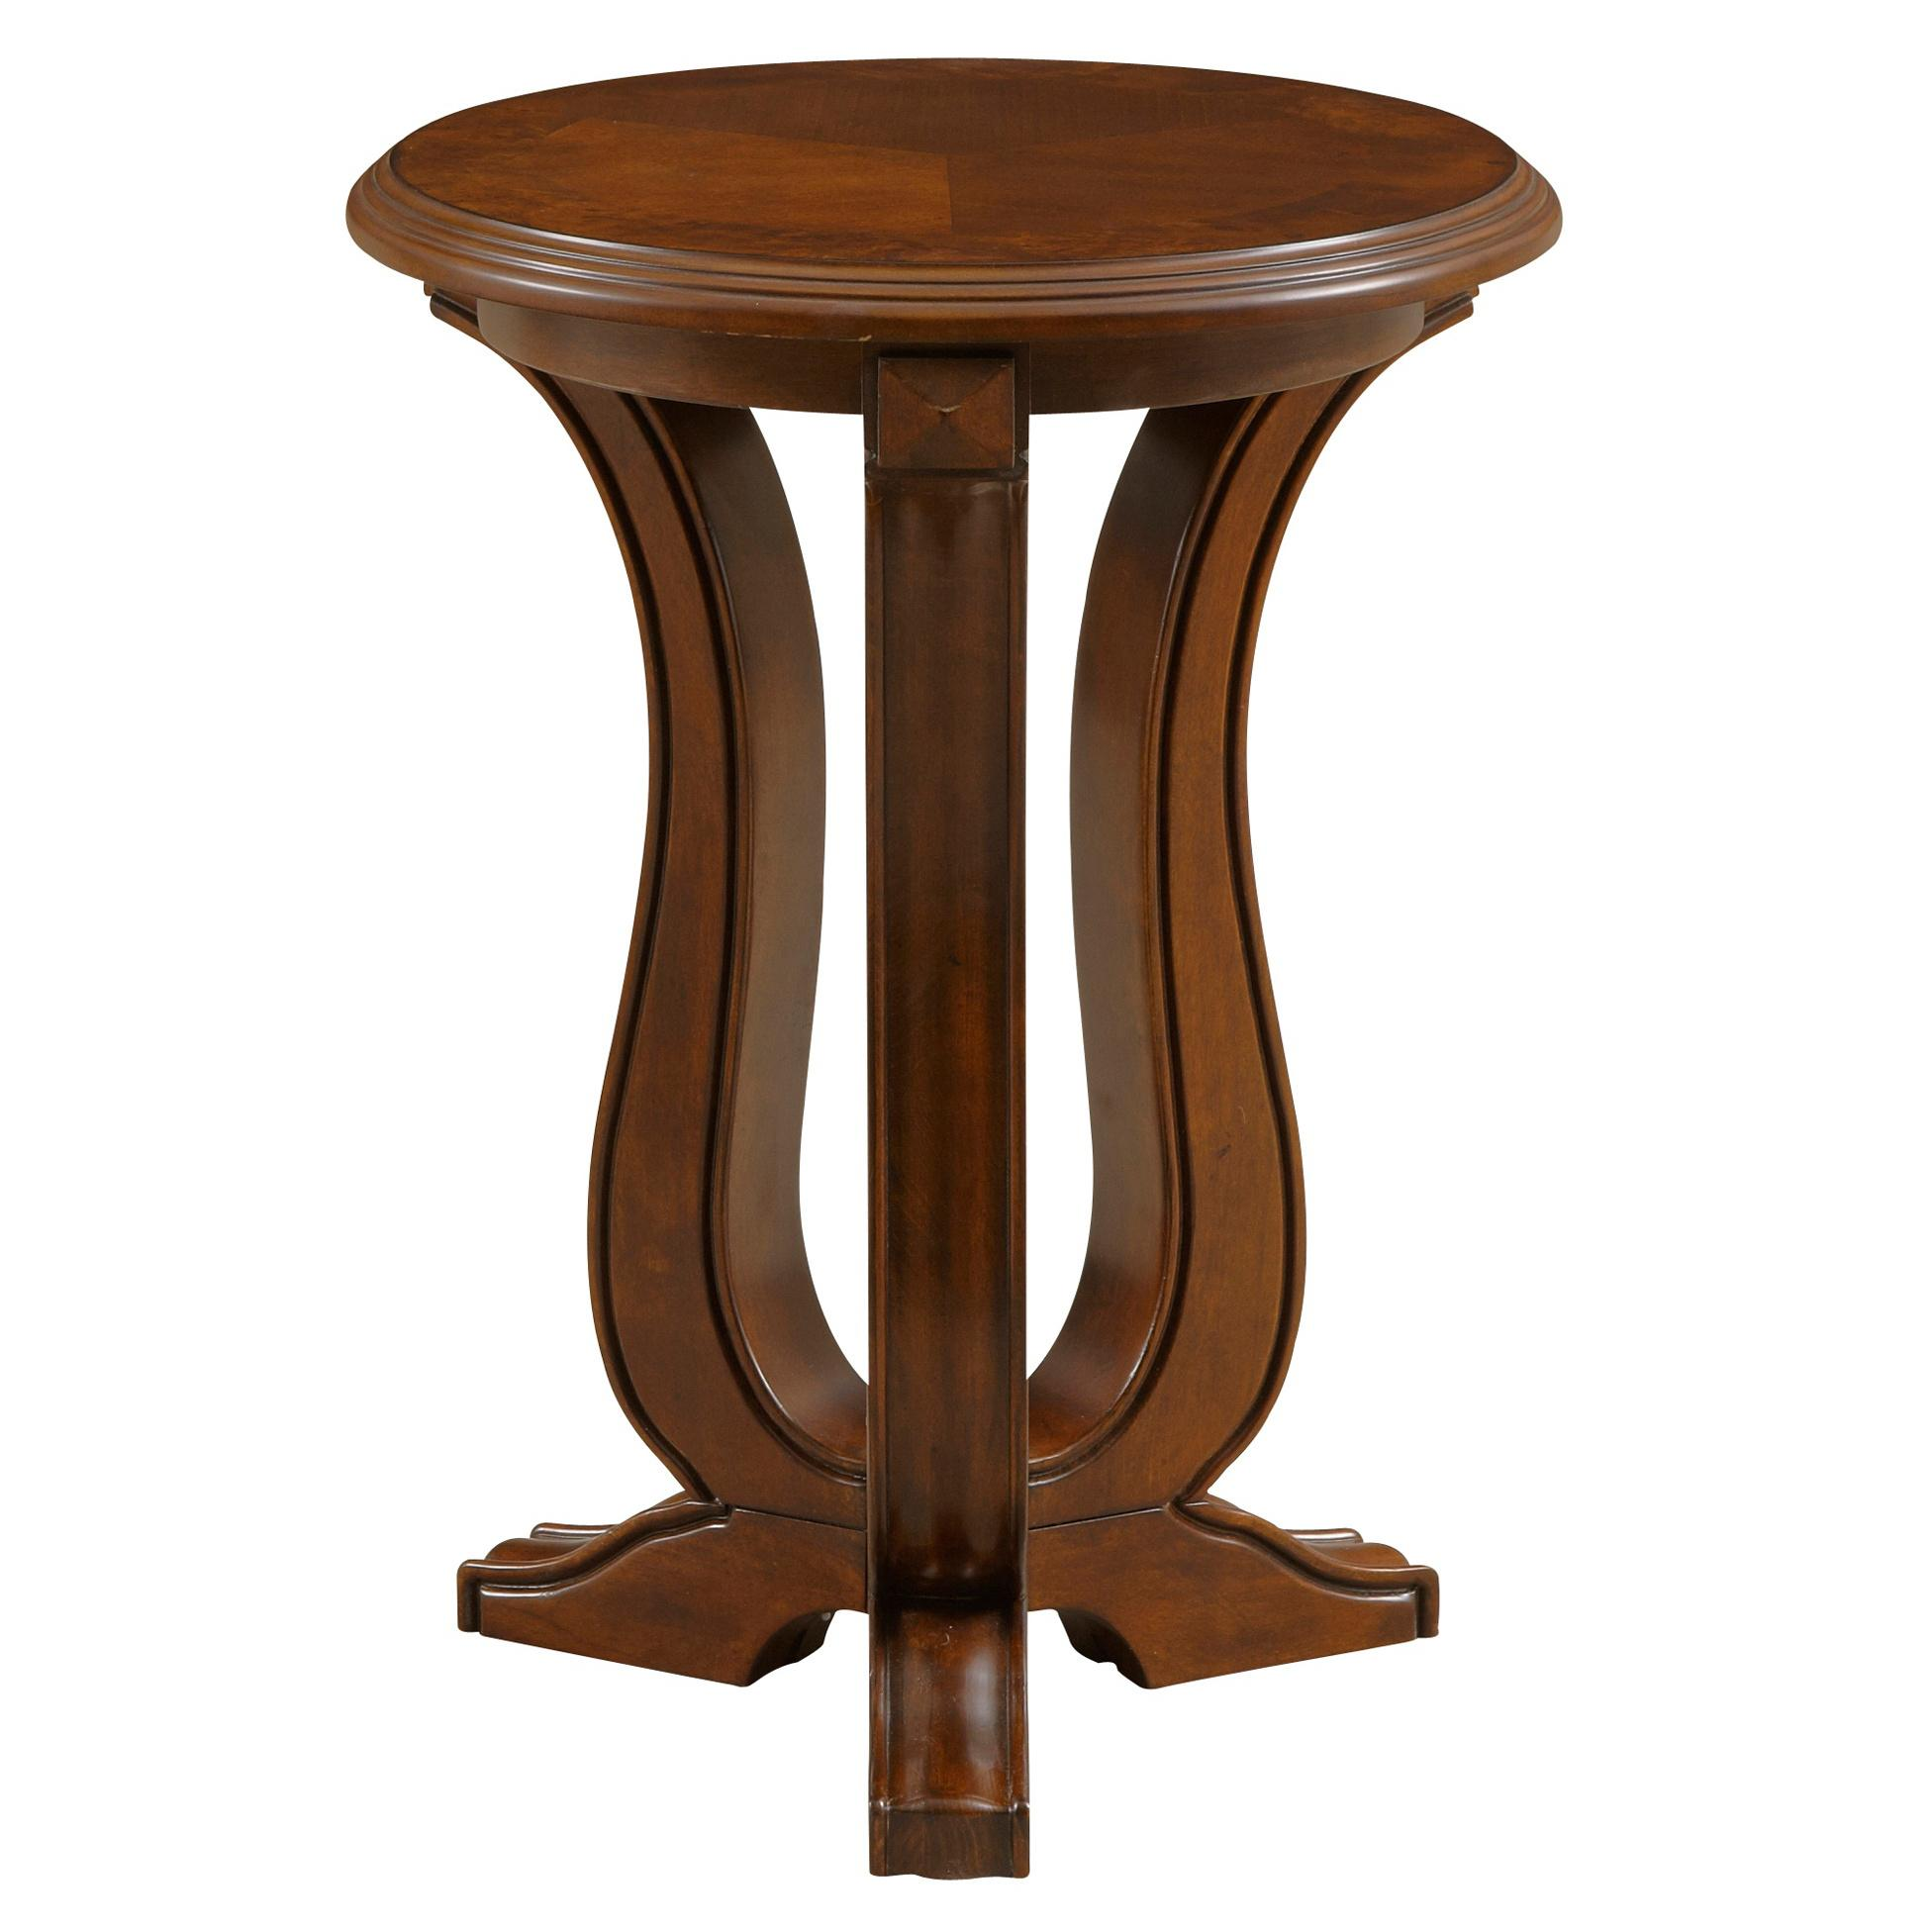 Broyhill Furniture Lana Round Chairside Table - Item Number: 3459-004